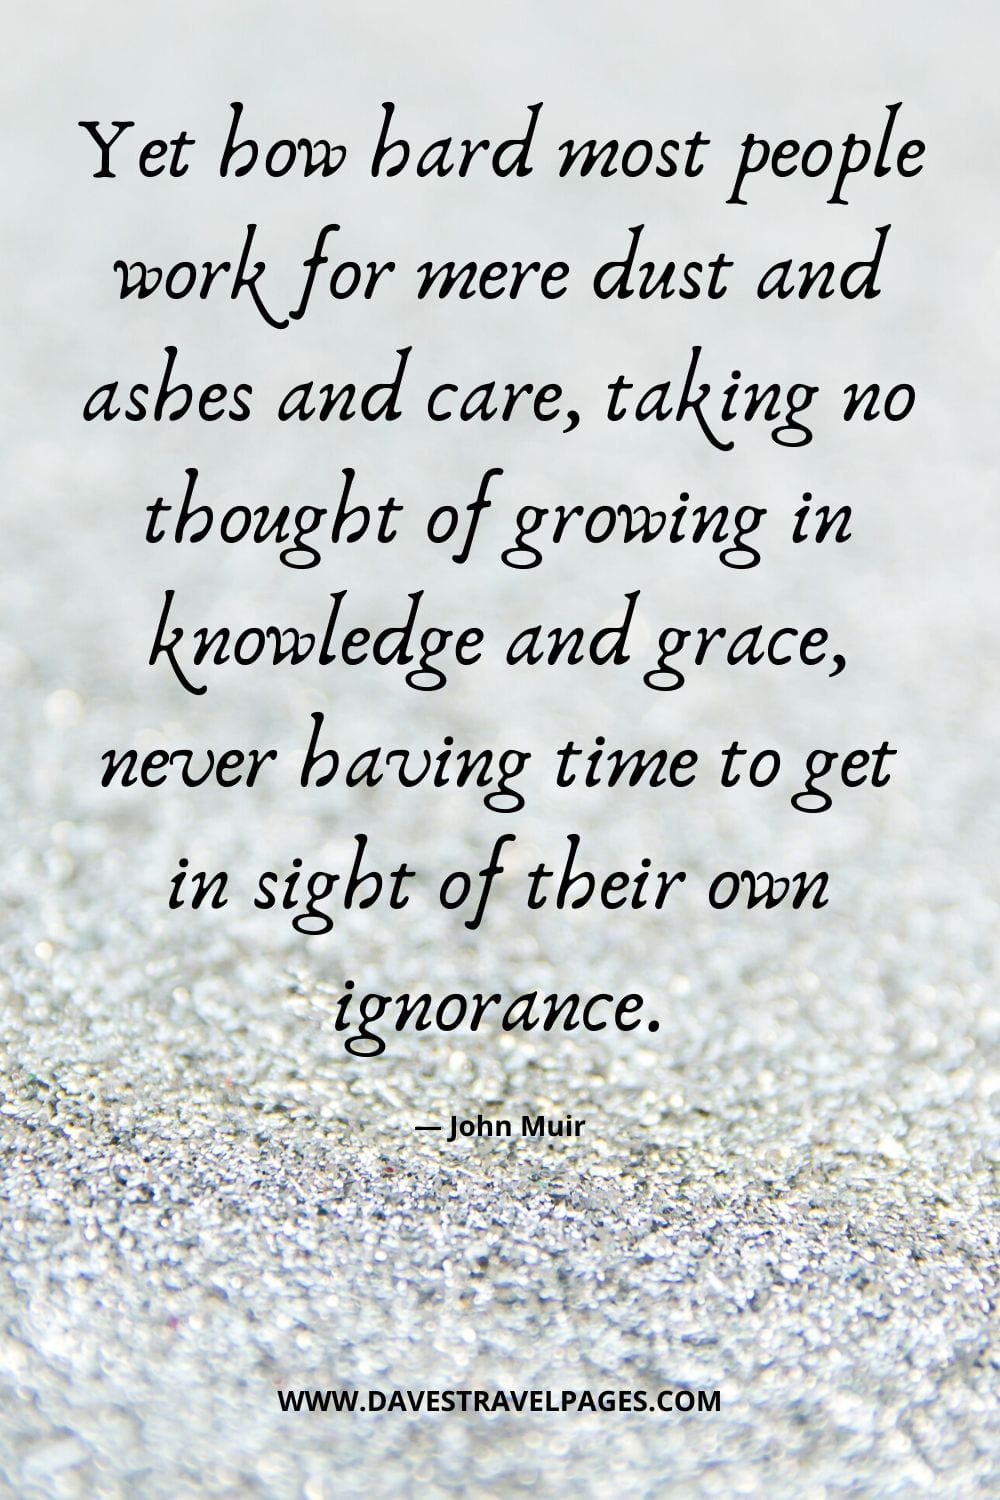 """John Muir Quotes - """"Yet how hard most people work for mere dust and ashes and care, taking no thought of growing in knowledge and grace, never having time to get in sight of their own ignorance."""""""